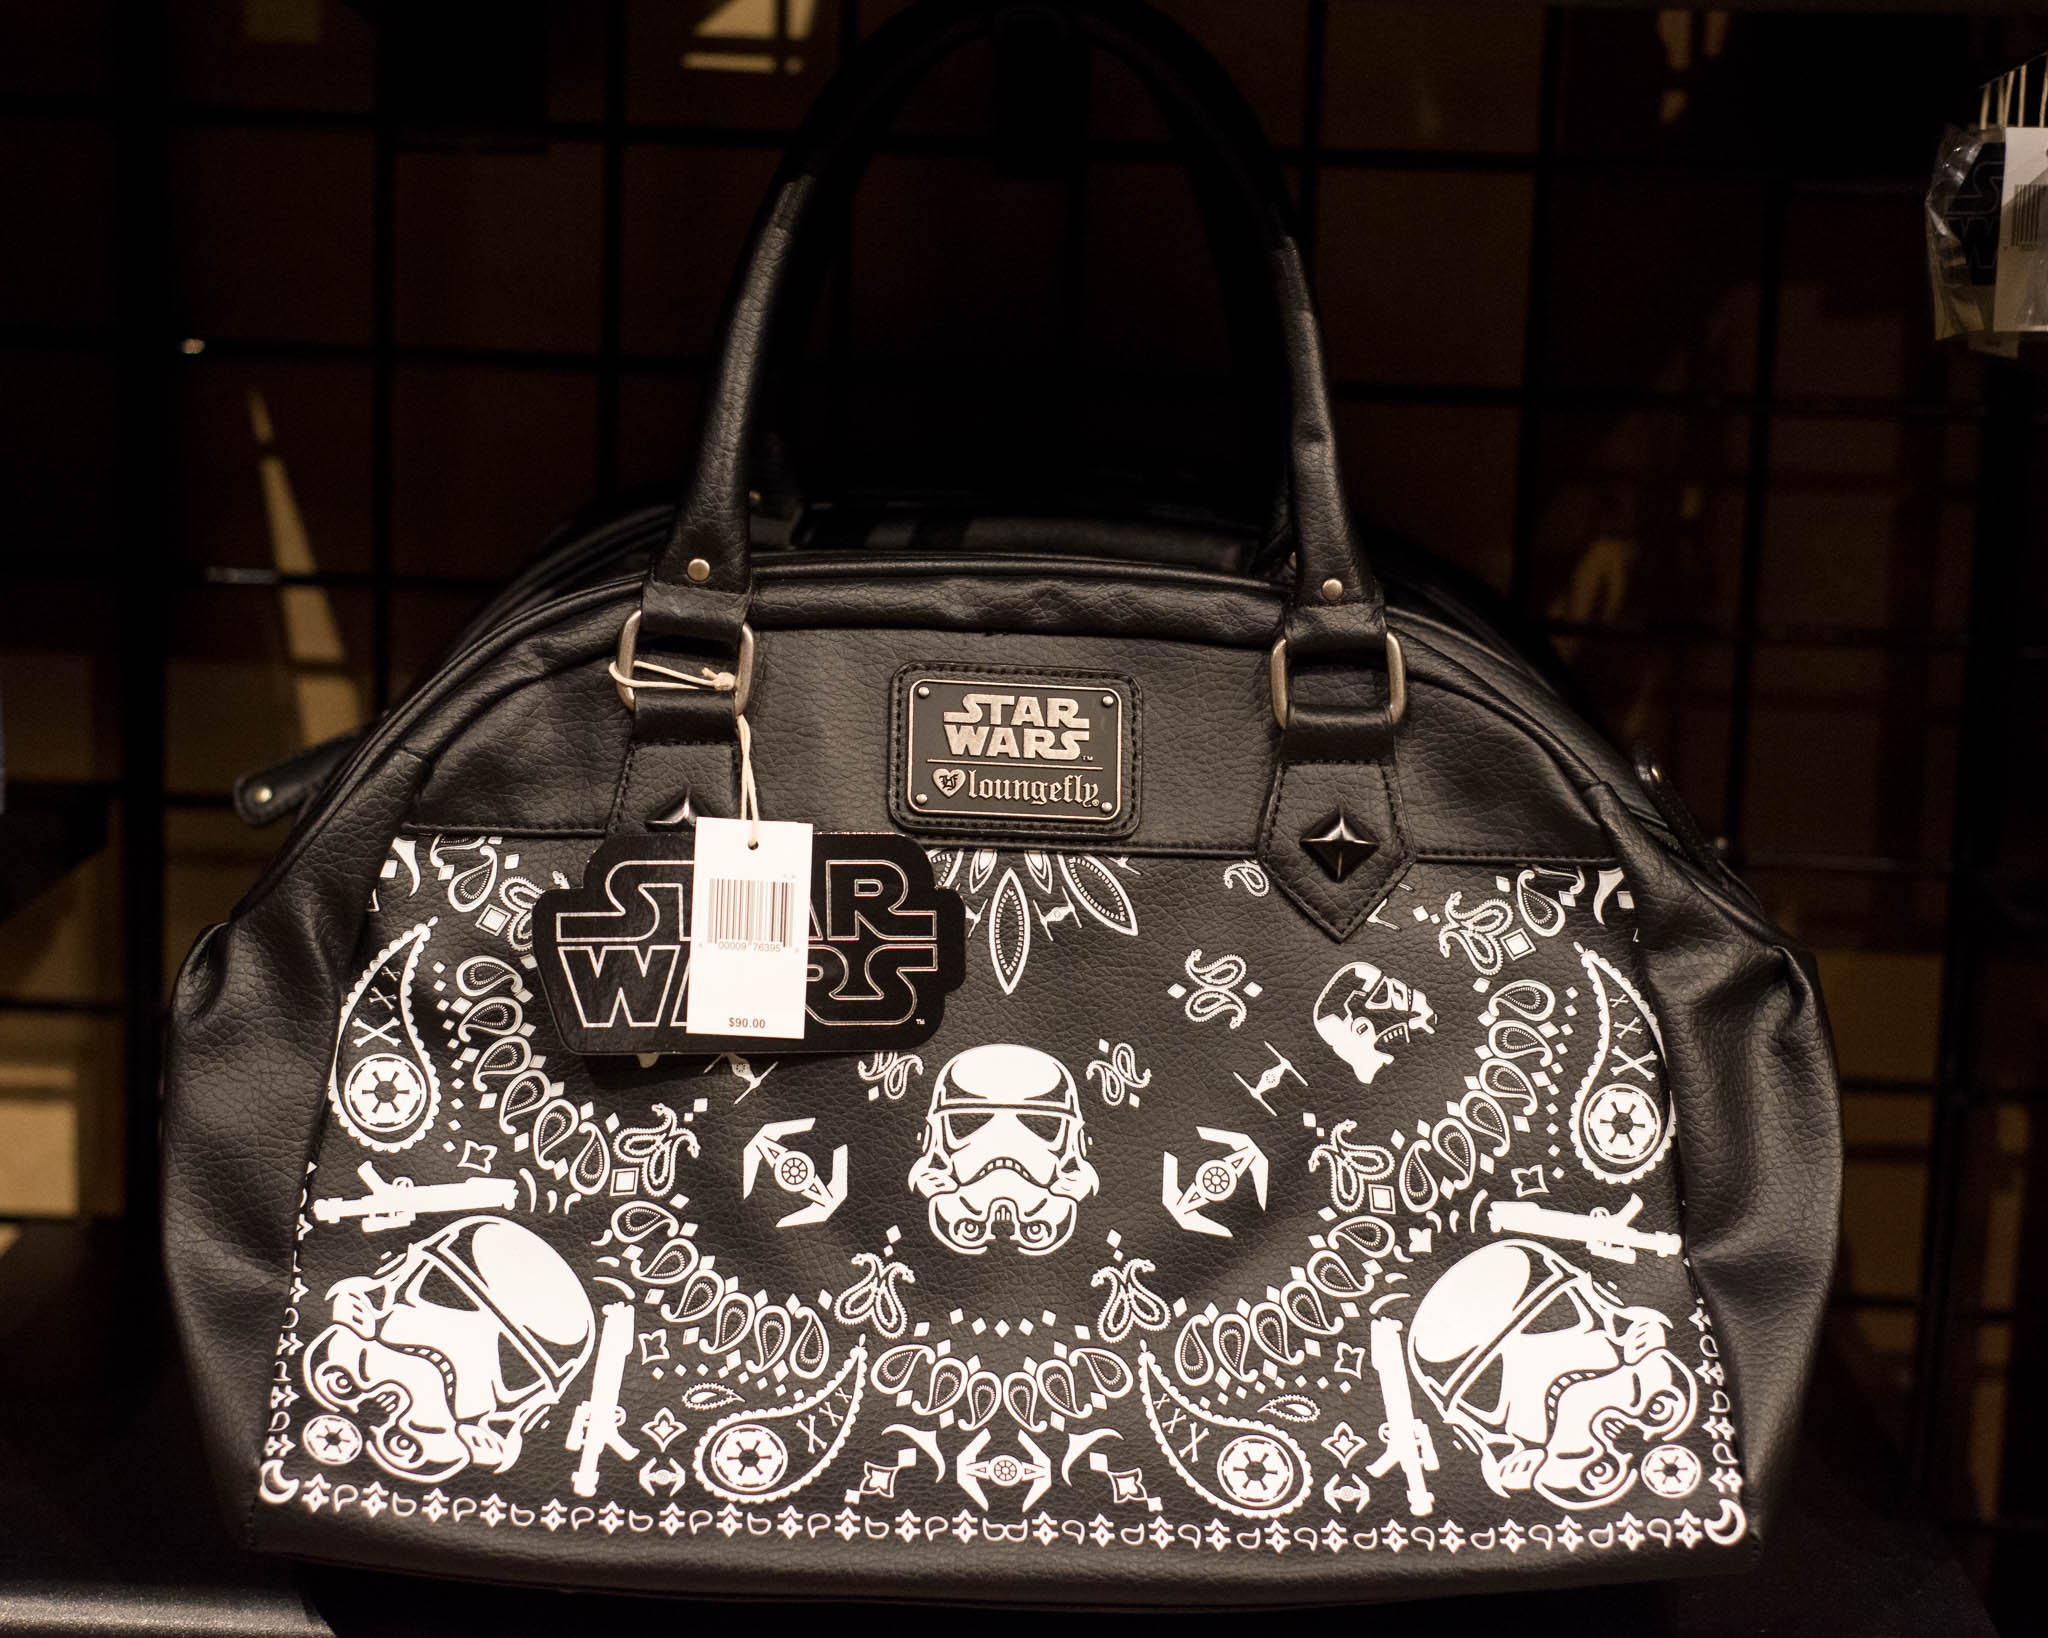 Star Wars Handbag